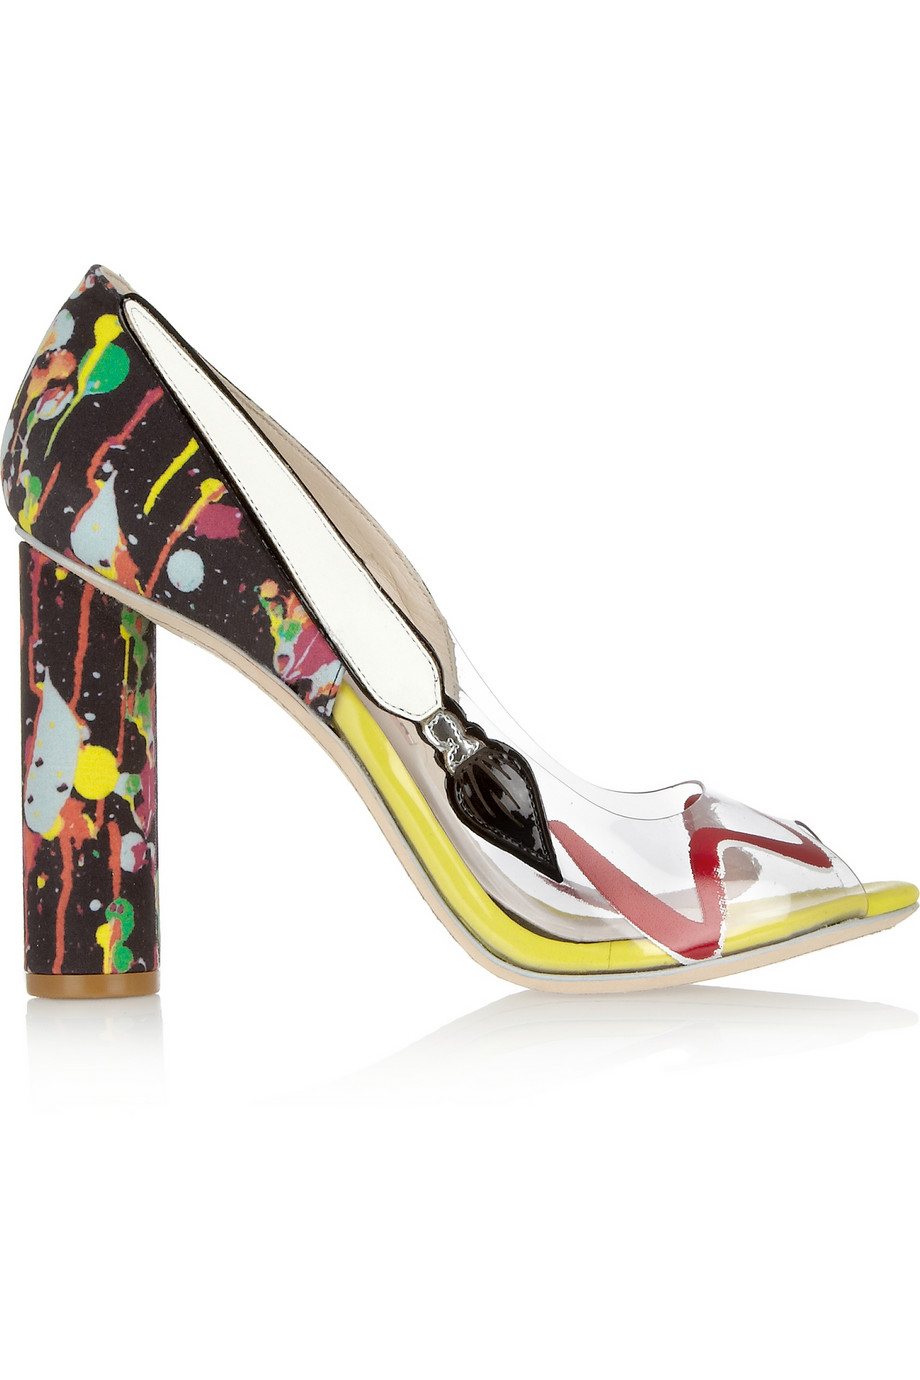 Sophia Webster Party Like Pollock Satin and PVC Pumps ($288, originally $575)